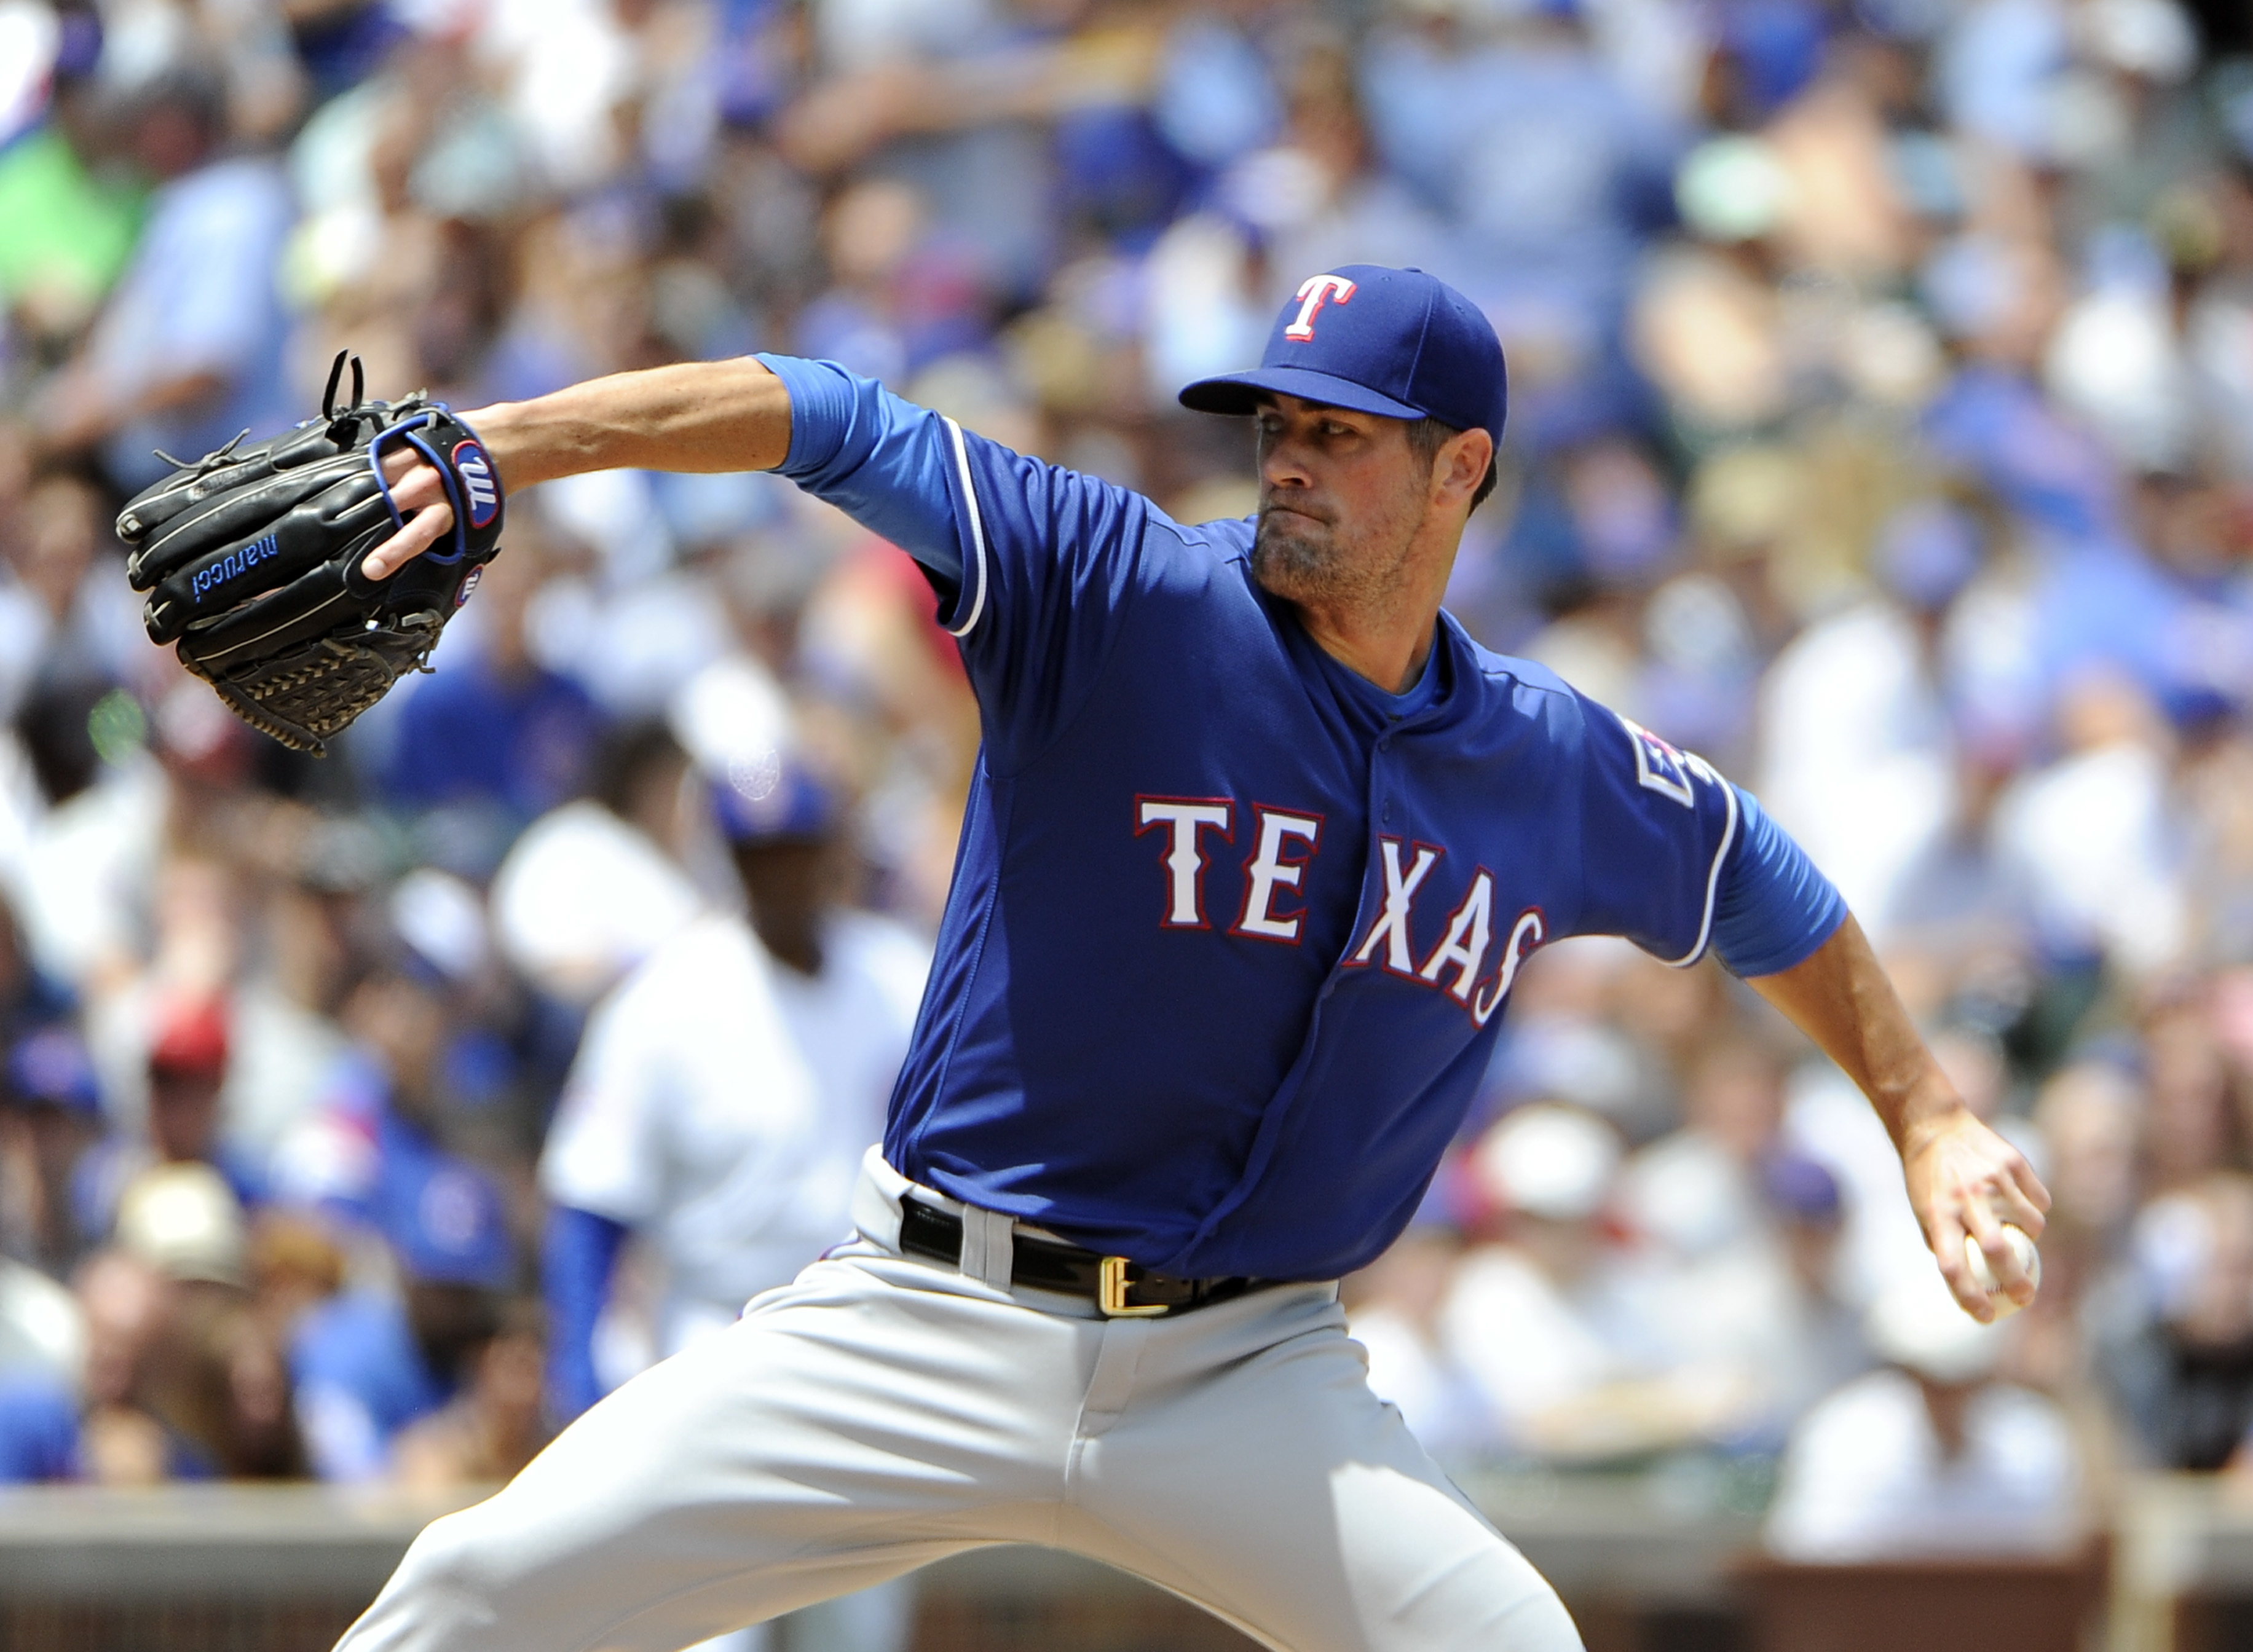 Texas Rangers starting pitcher Cole Hamels (35) throws against the Chicago Cubs during the first inning of an interleague baseball game, Sunday, July 17, 2016, in Chicago. (AP Photo/David Banks)